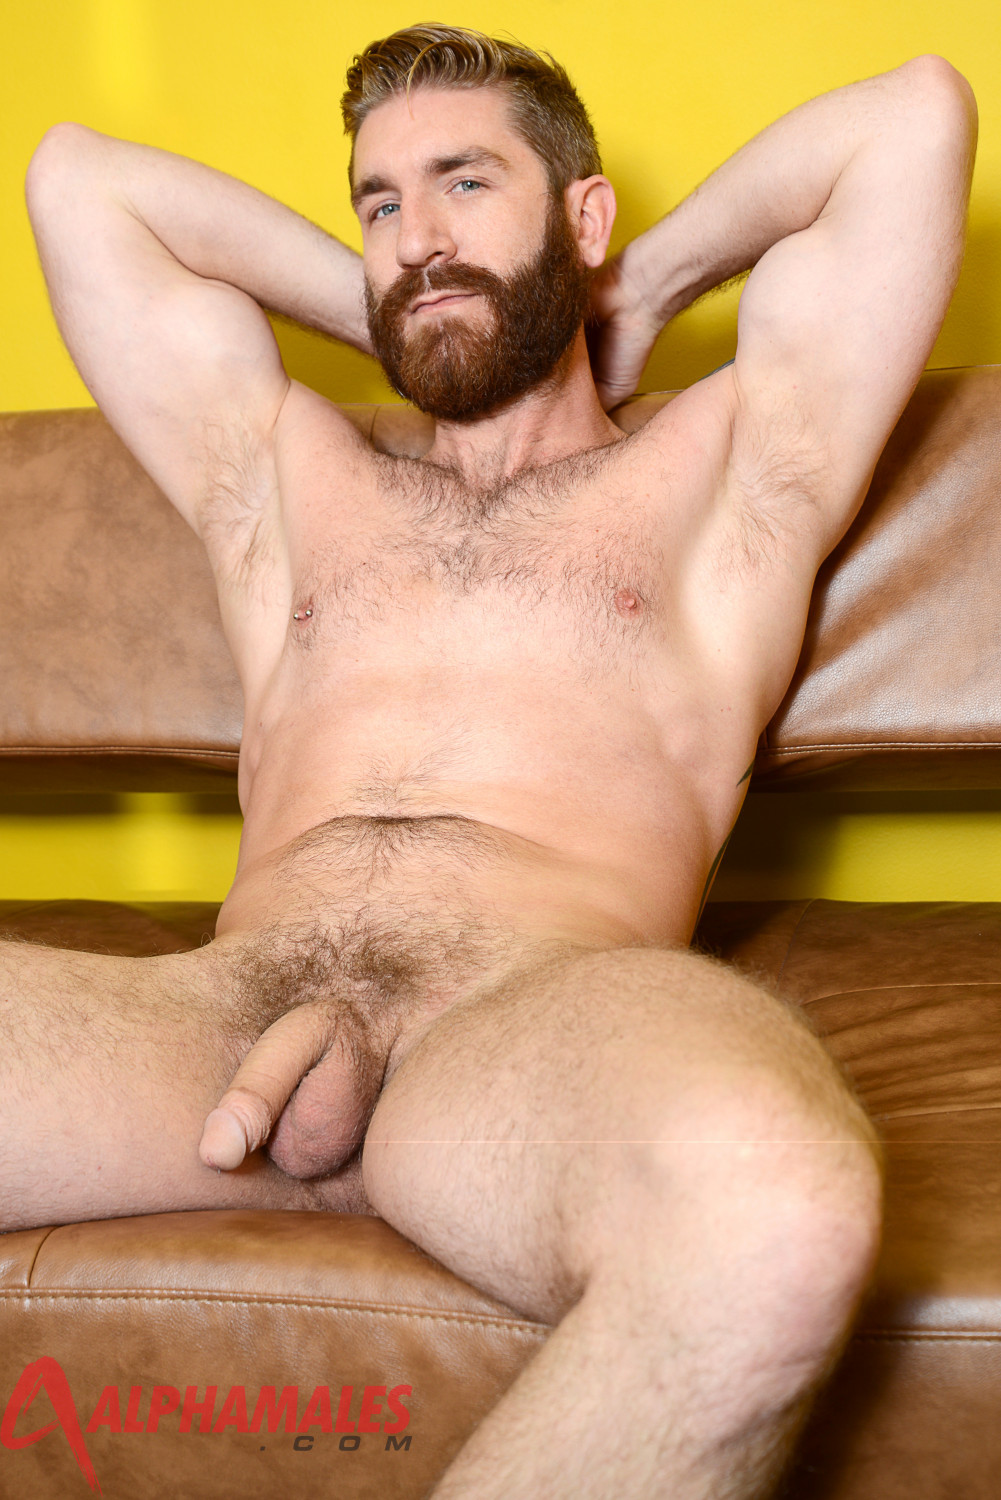 AlphaMales-Geoffrey-Paine-Big-Cock-Fleshlight-Fleshjack-Amateur-Gay-Porn-02 Amateur Hairy Muscle Stud Geoffrey Paine With Big Cock and Fleshjack